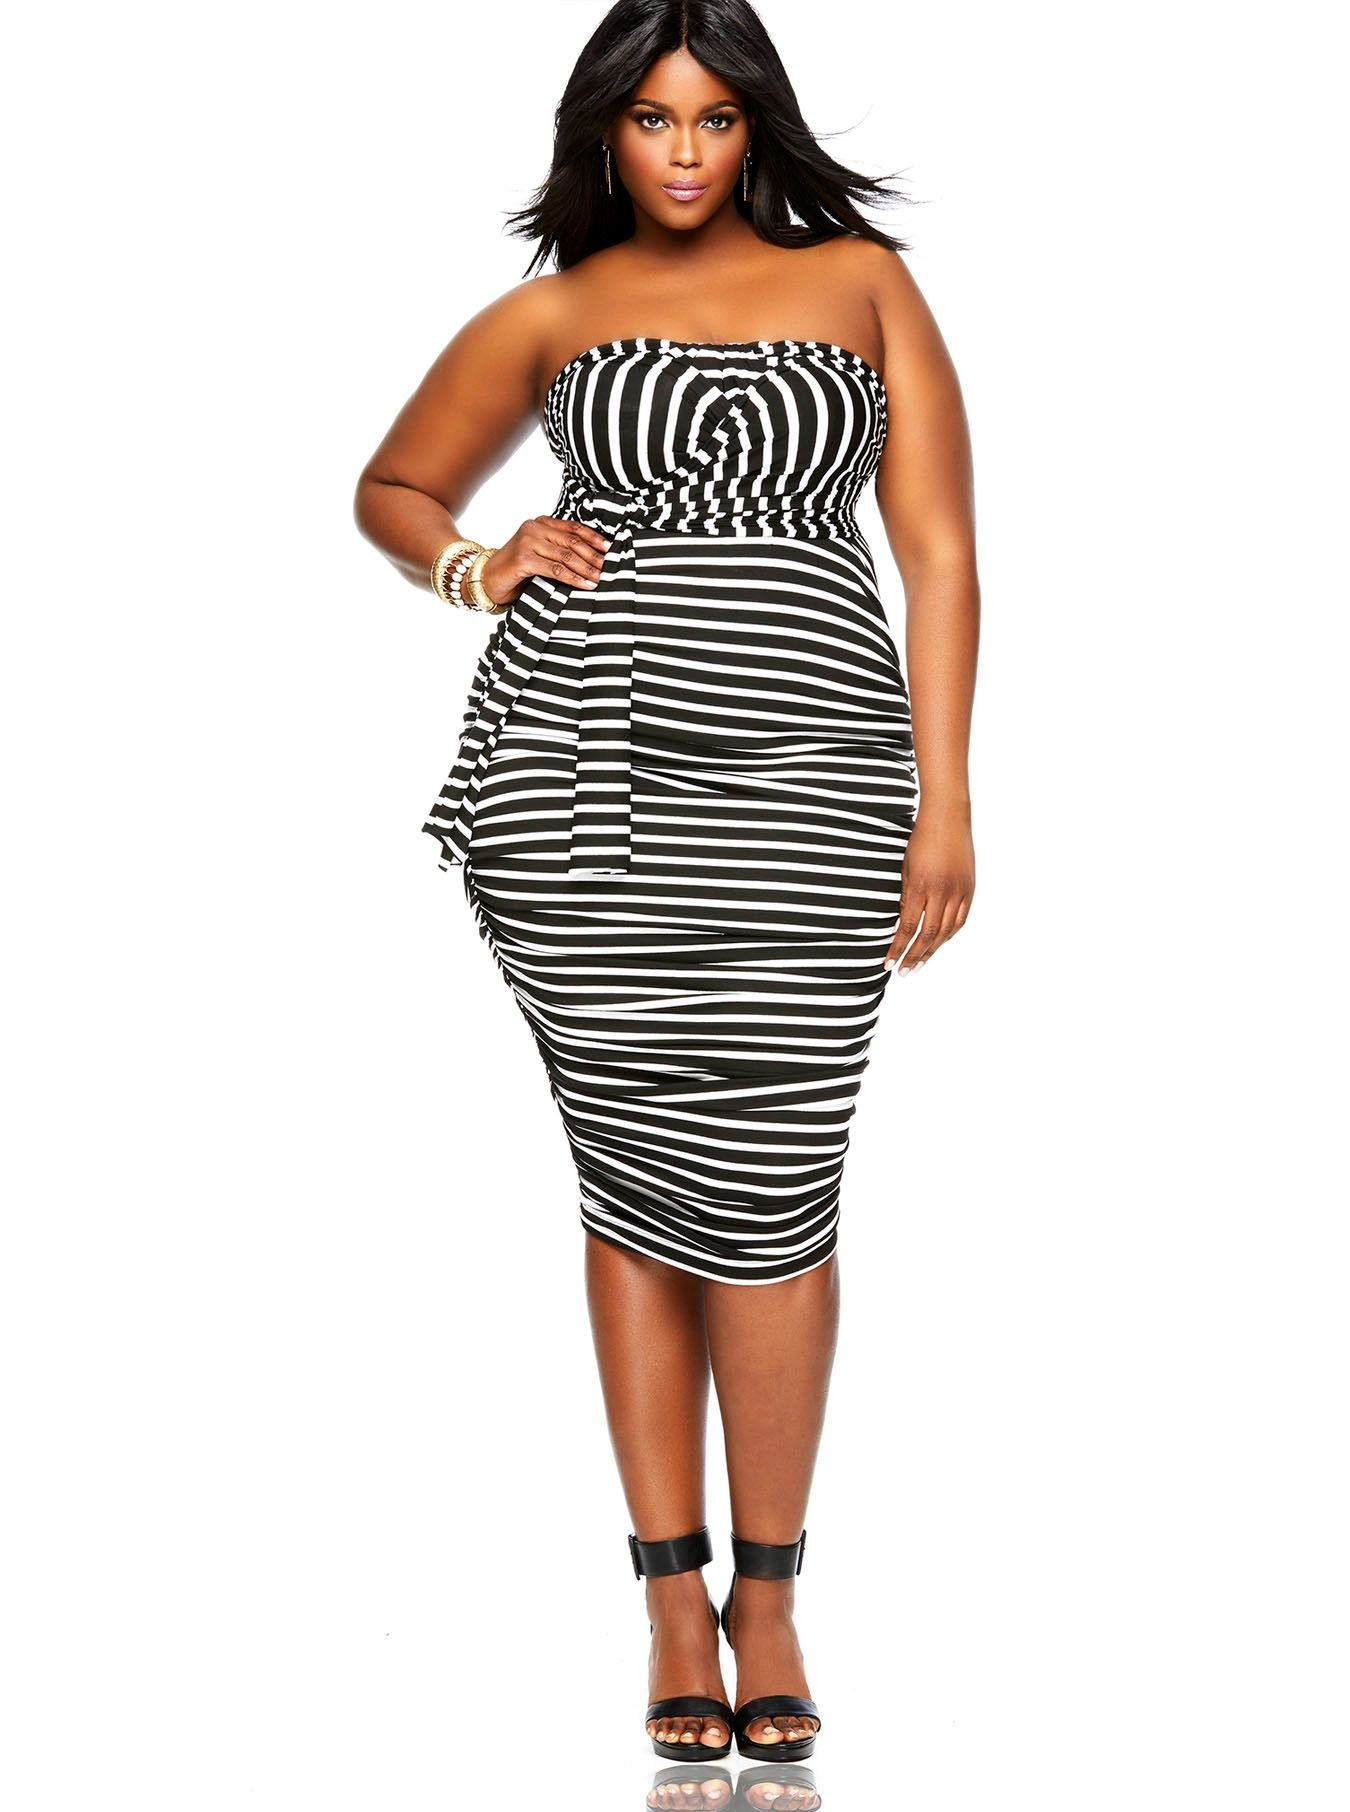 Pin By Laura Oviedo On For The Love Of Fashion Plus Size Fashion Plus Size Outfits Curvy Girl Fashion